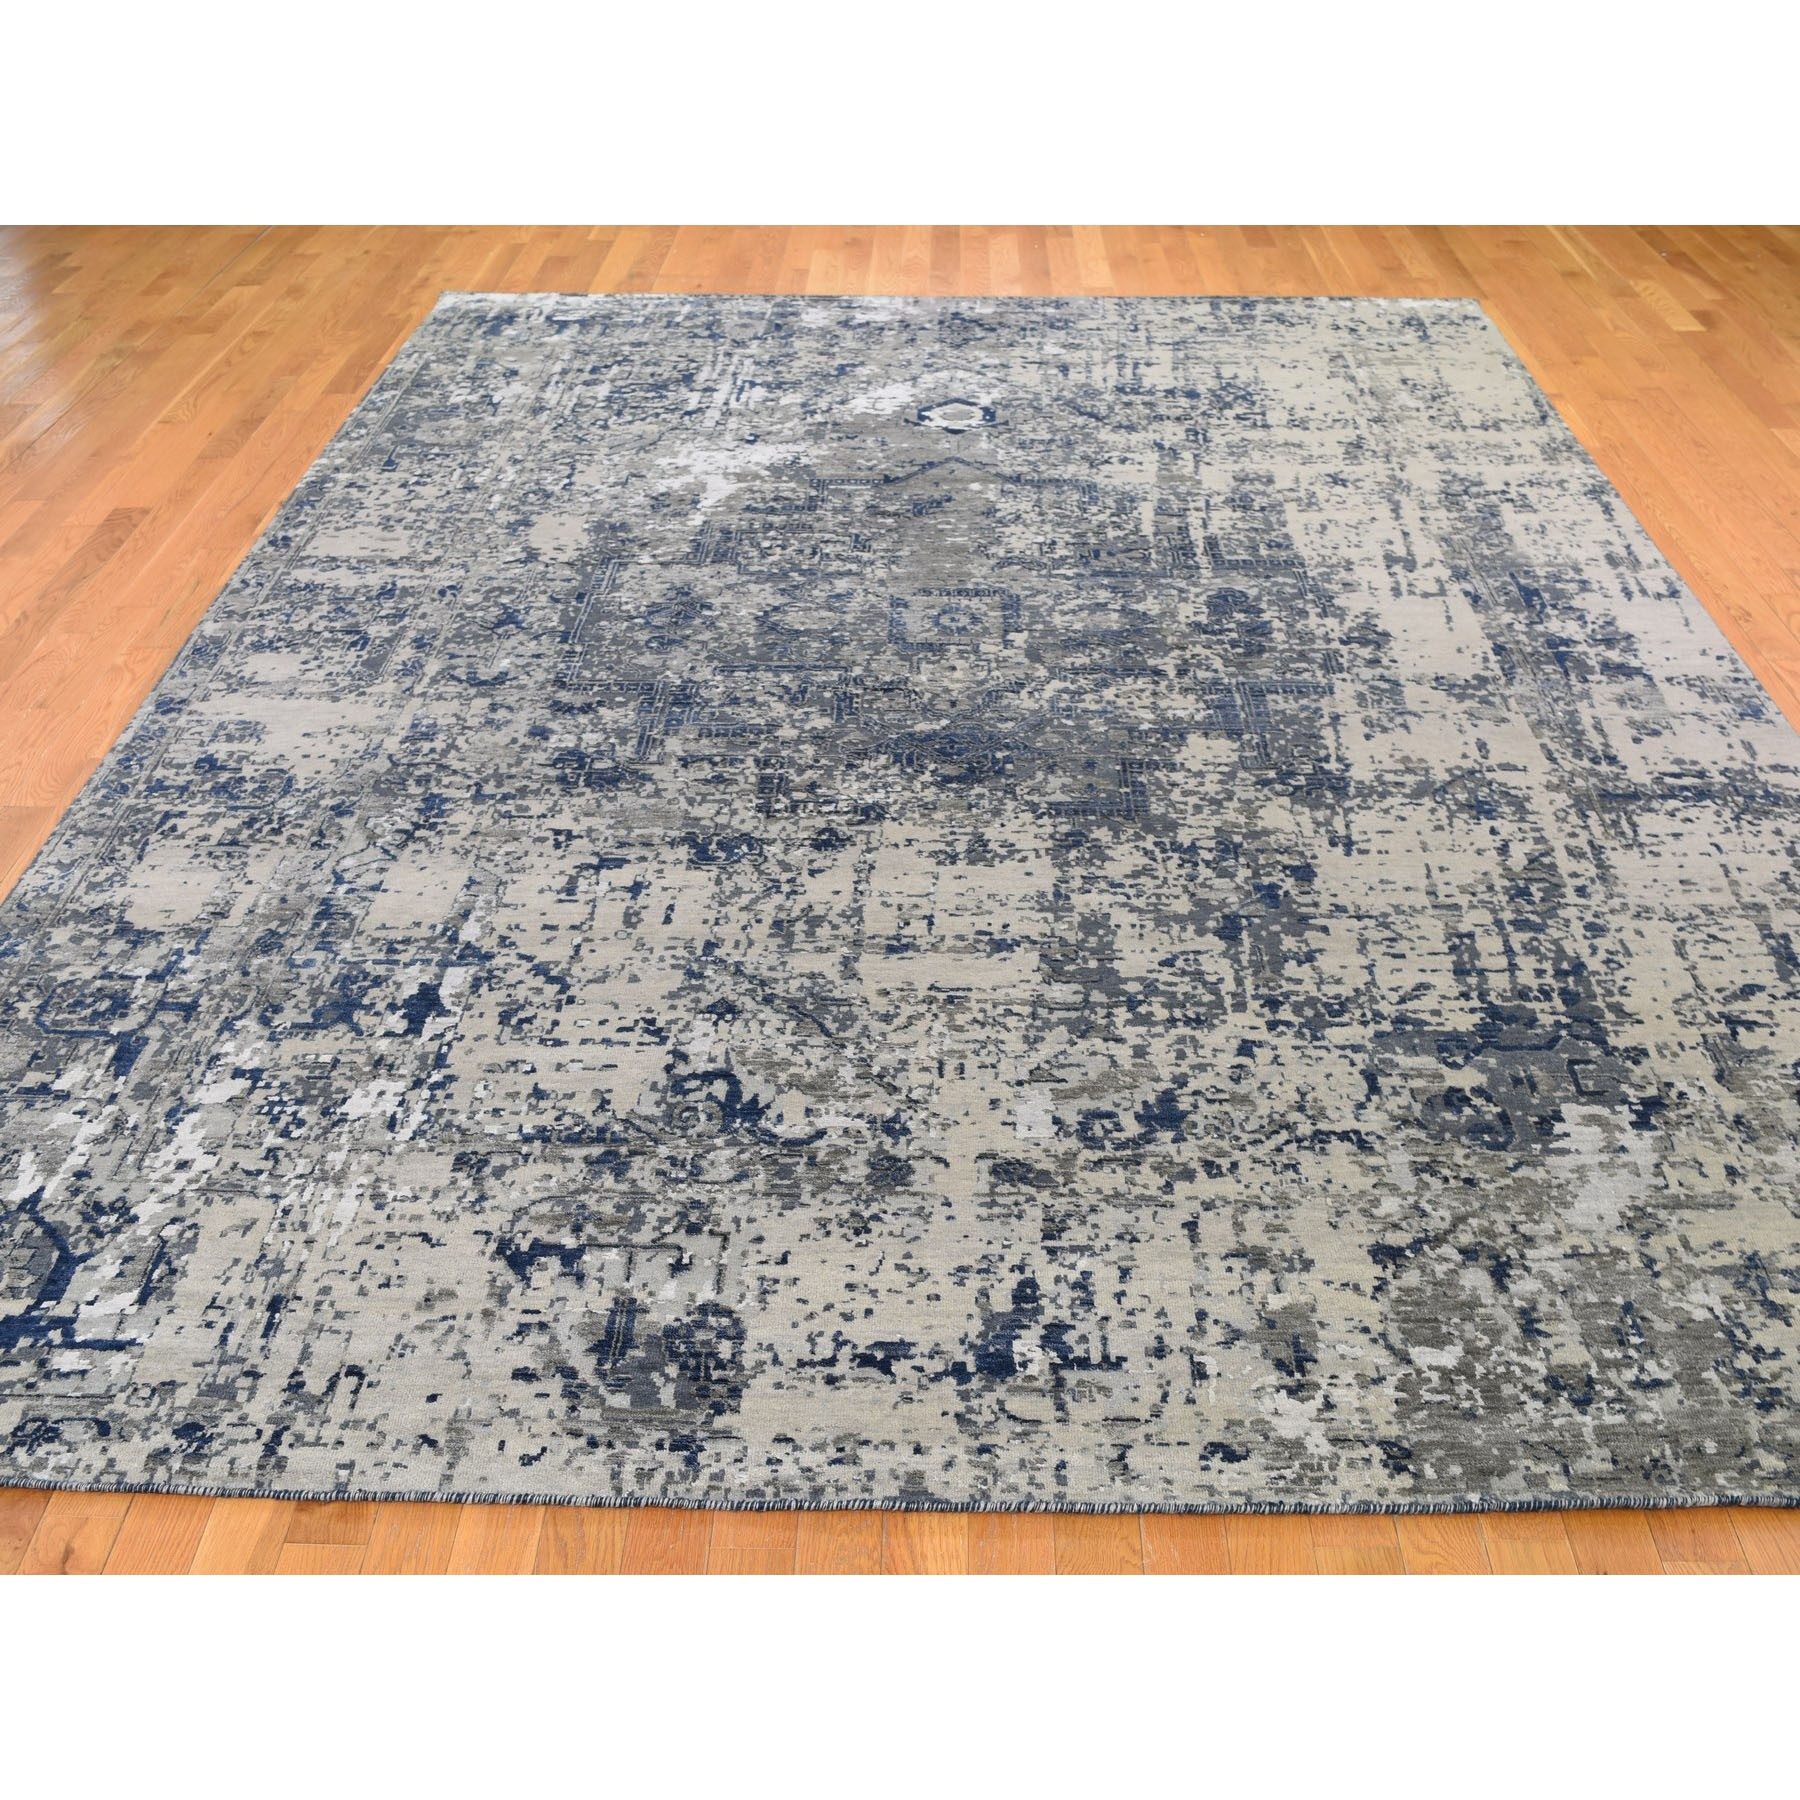 9'x12' Blue-Gray Erased Heriz Design Wool and Silk Hand-Knotted Fine Oriental Rug